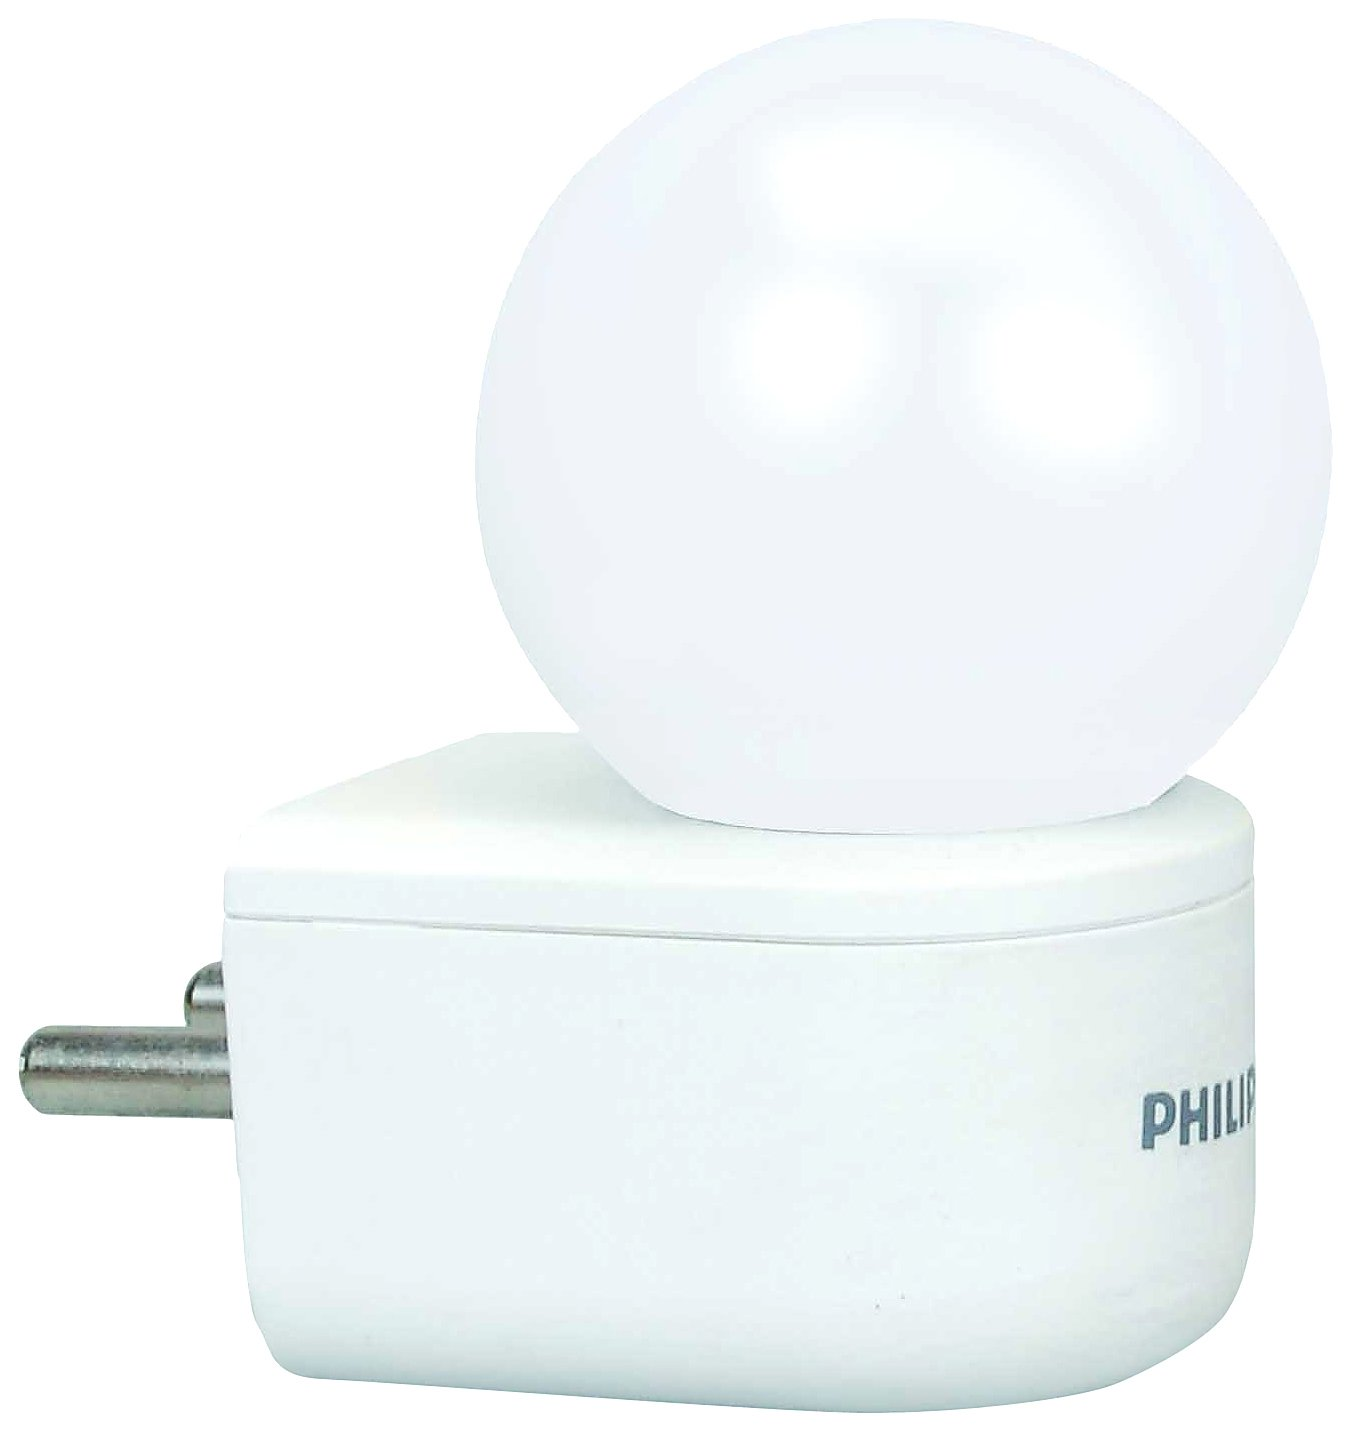 Night Light Buy Lights Online At Low Prices In India 4 Way Switch Philips Joy Vision Coral Rush 05 Watt Led Bulb White And Pack Of 1